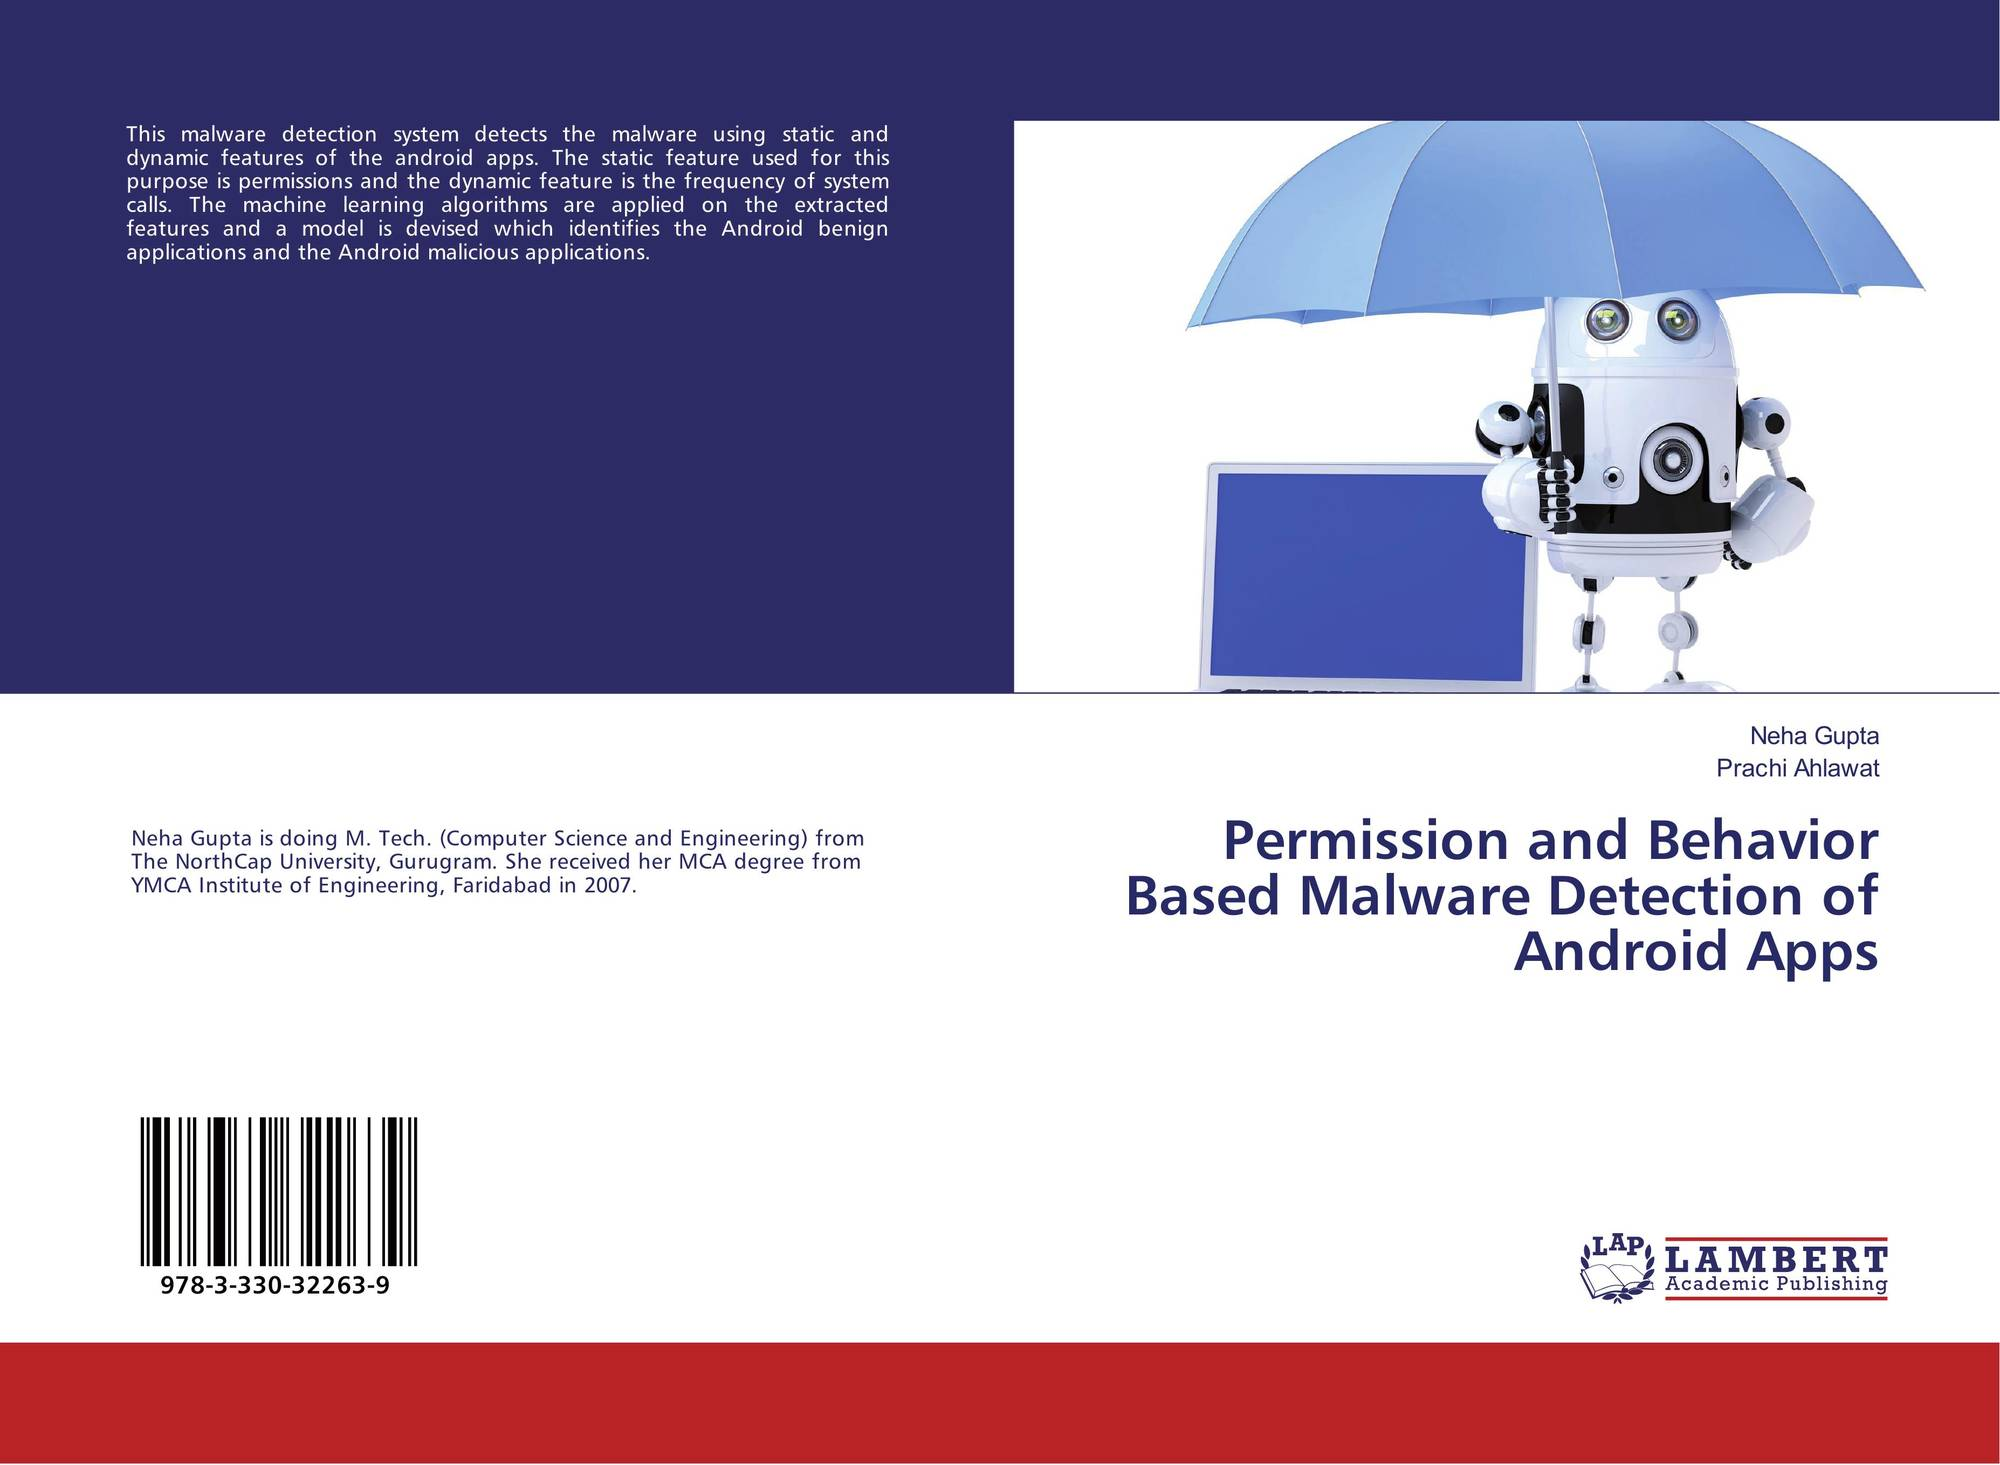 Permission and Behavior Based Malware Detection of Android